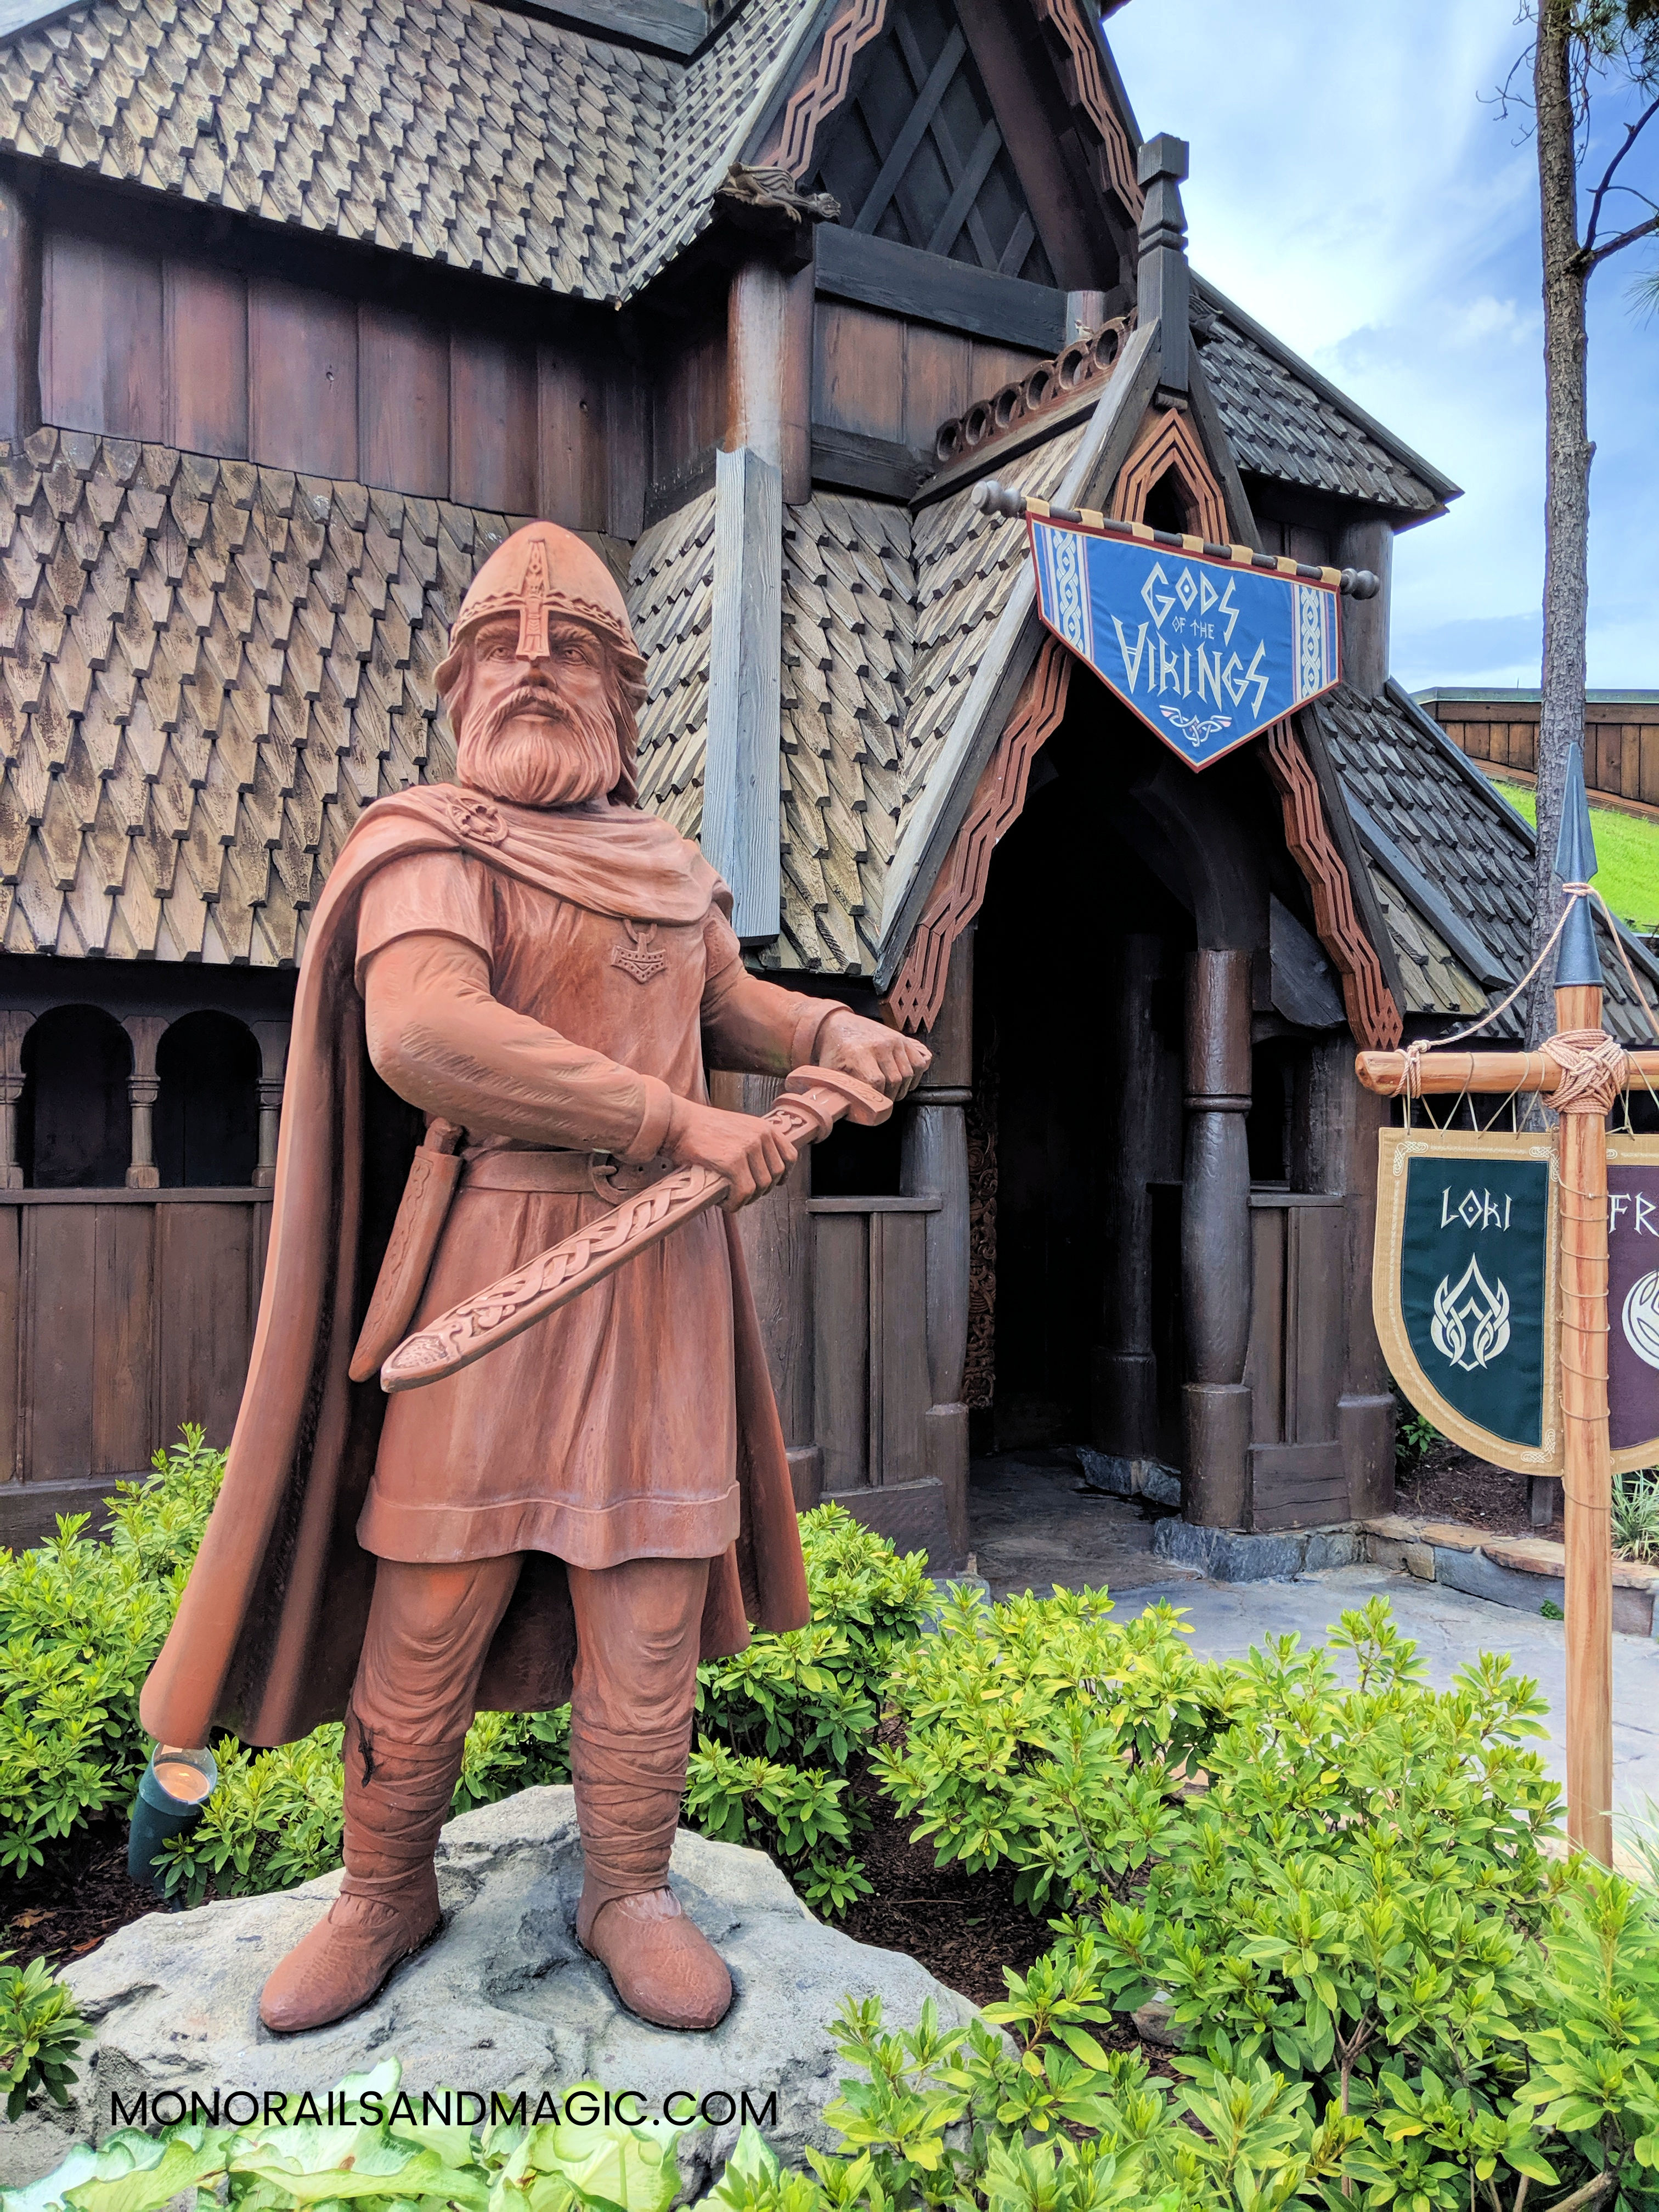 Educational Resources for Epcot's Norway Pavilion